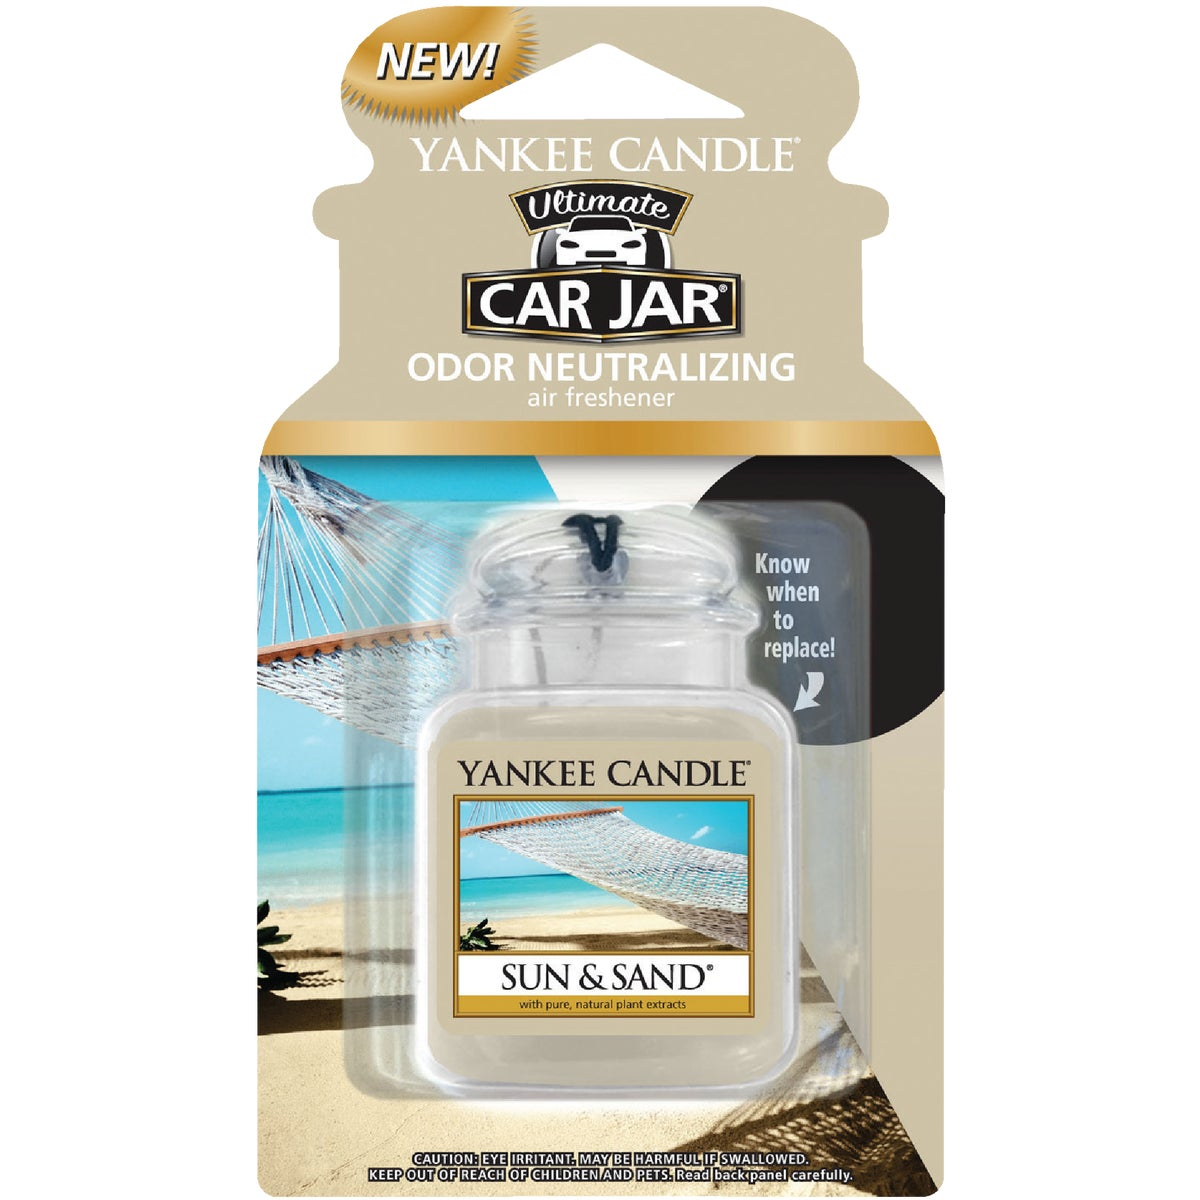 SUN & SAND CAR JAR ULTMT